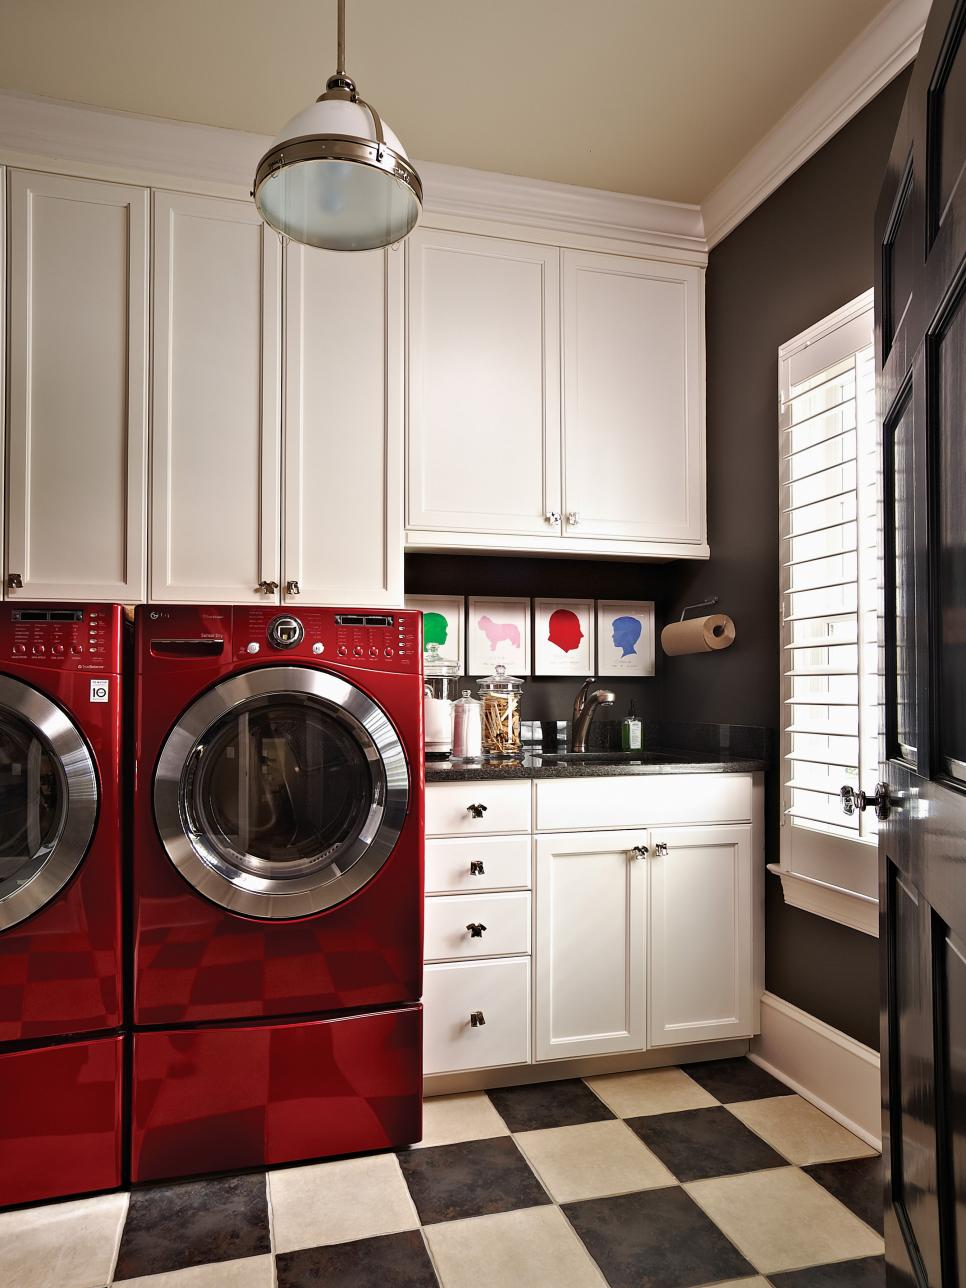 Beautiful And Efficient Laundry Room Designs HGTV - Bathroom laundry room design ideas